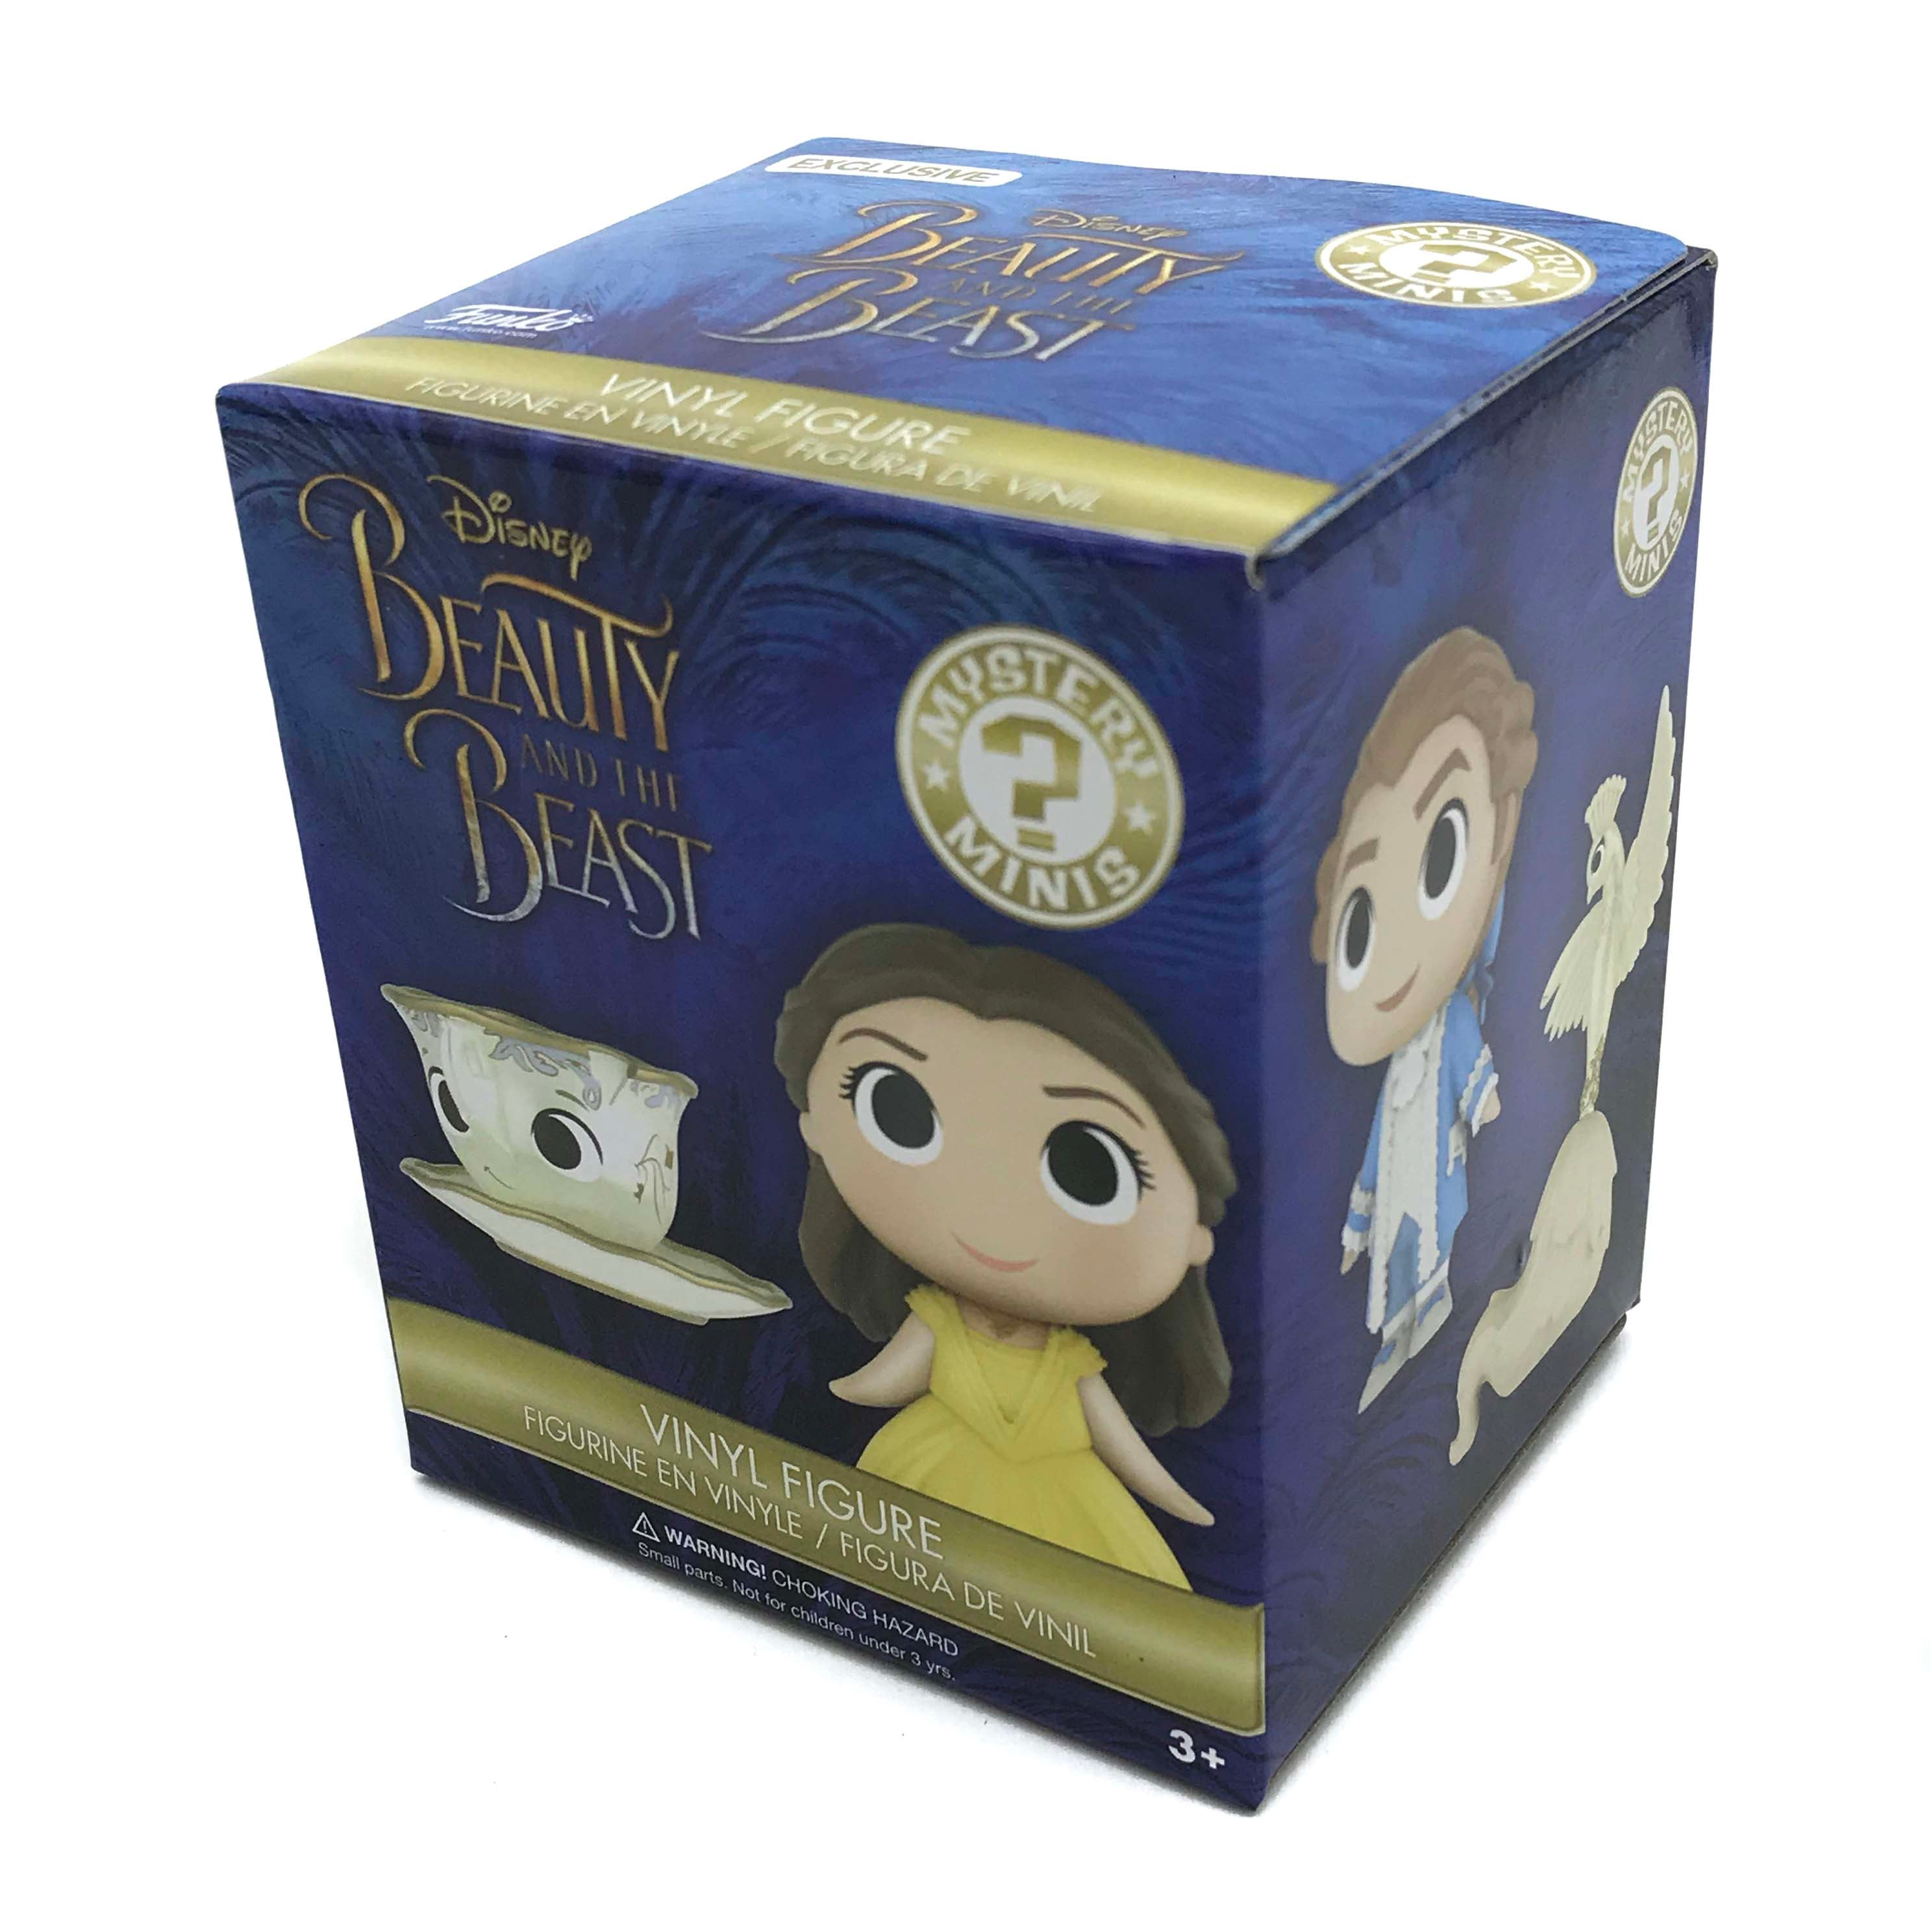 Beauty and the Beast Mystery Minis [Walmart Exclusive]: (1 Blind Box) - Fugitive Toys